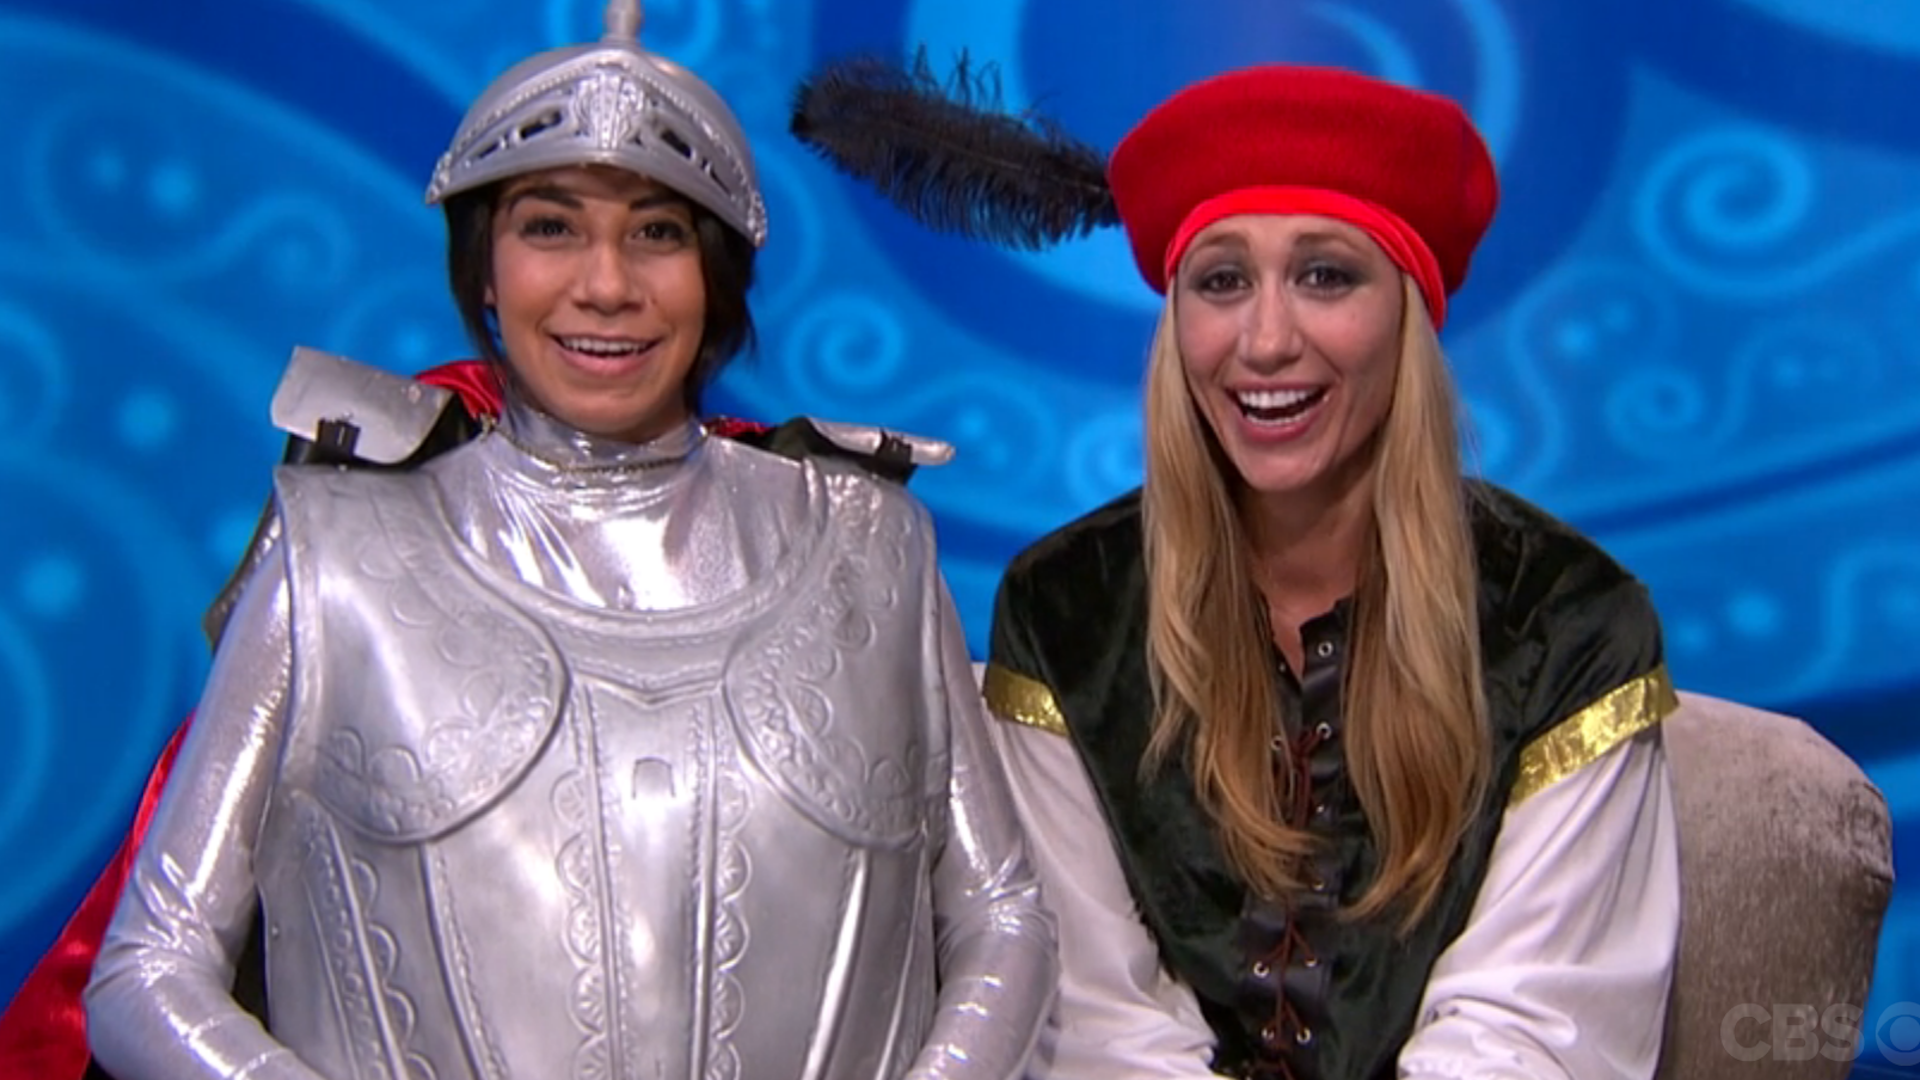 Jackie Ibarra and Vanessa Rousso's medieval costumes